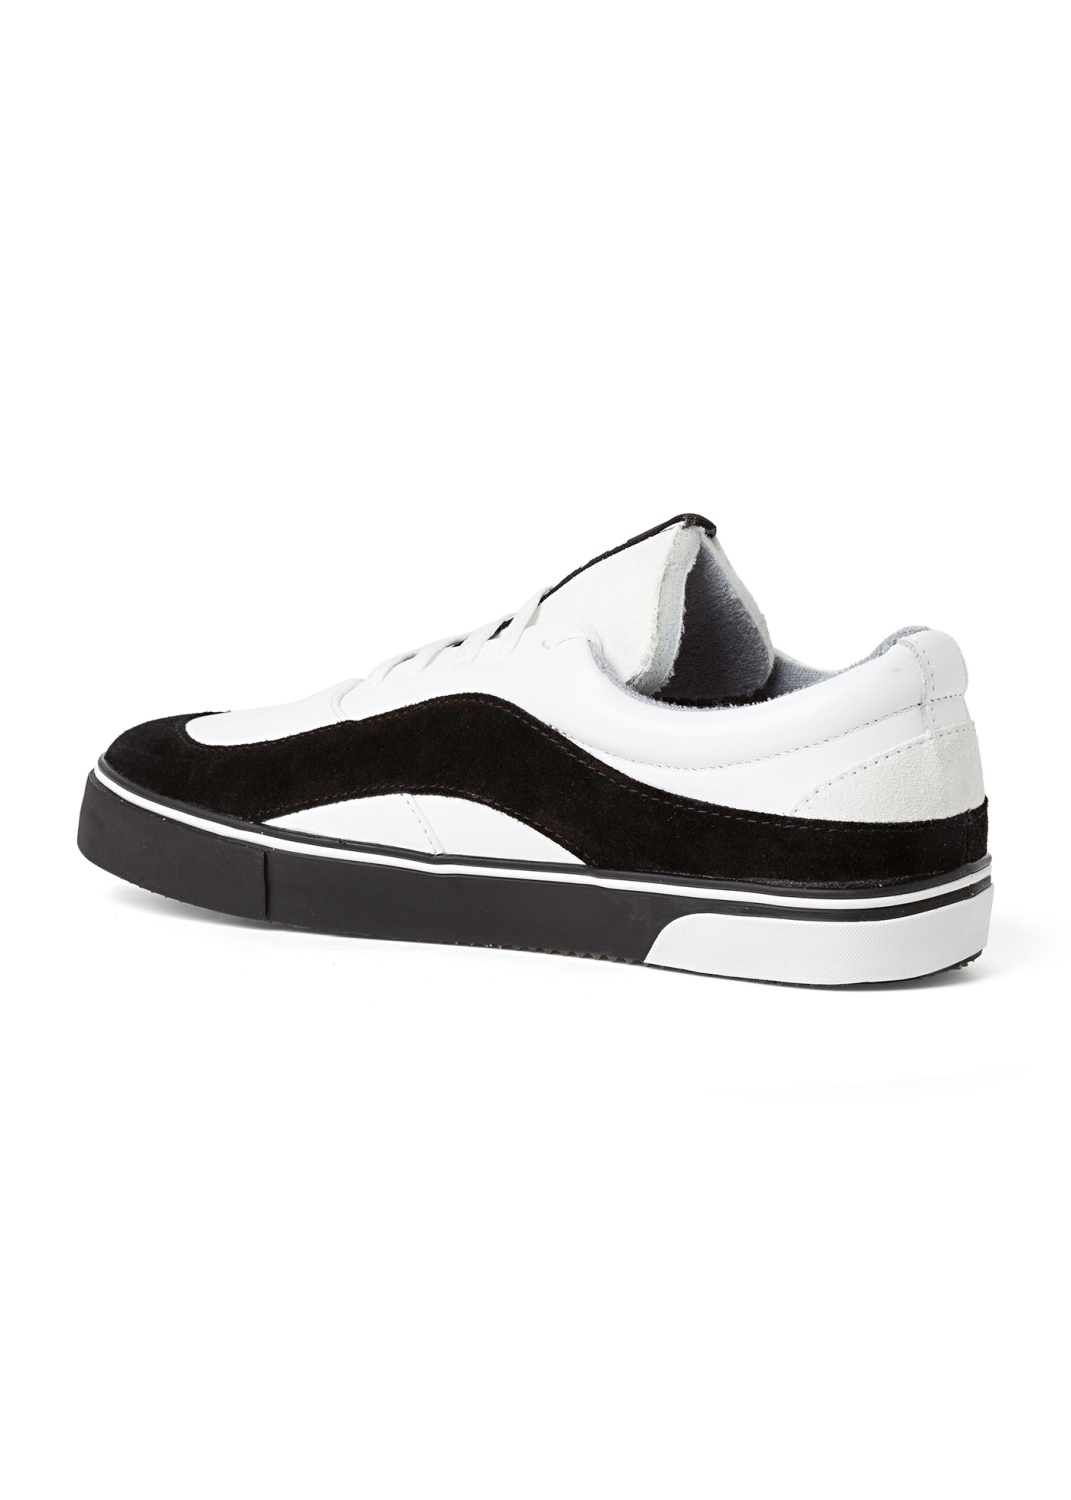 VULC PALM LOW image number 2